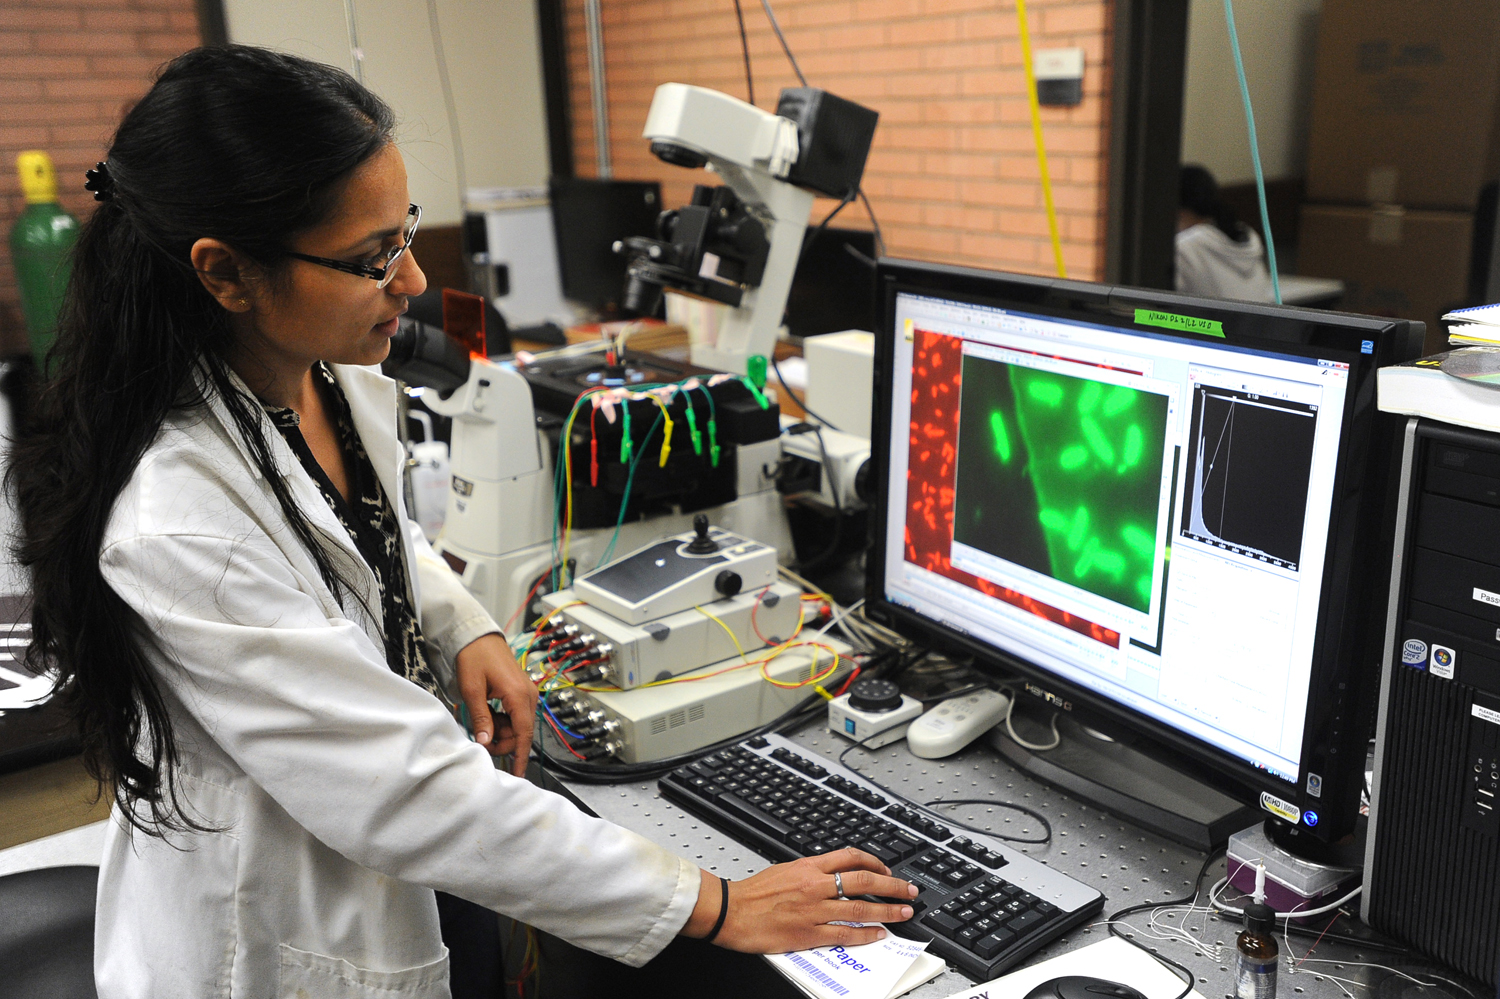 Graduate student Jamini Jangir, 27, points out Shewanella bacteria cells on a computer screen at the University of Southern California. Photograph by Kent Treptow for PBSNewsHour